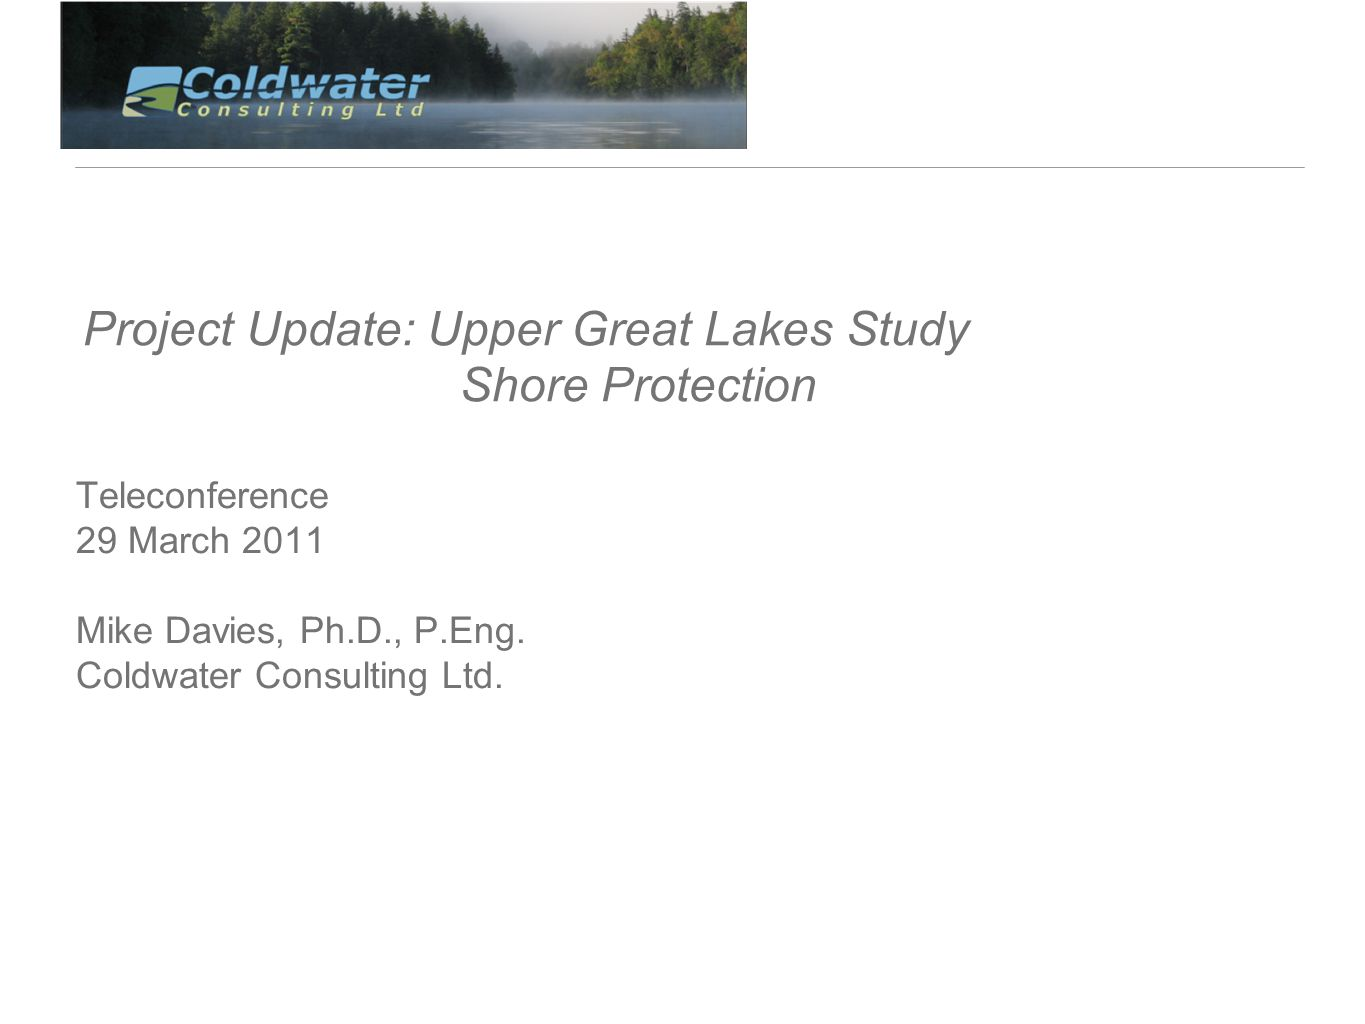 Project Update: Upper Great Lakes Study Shore Protection Teleconference 29 March 2011 Mike Davies, Ph.D., P.Eng.